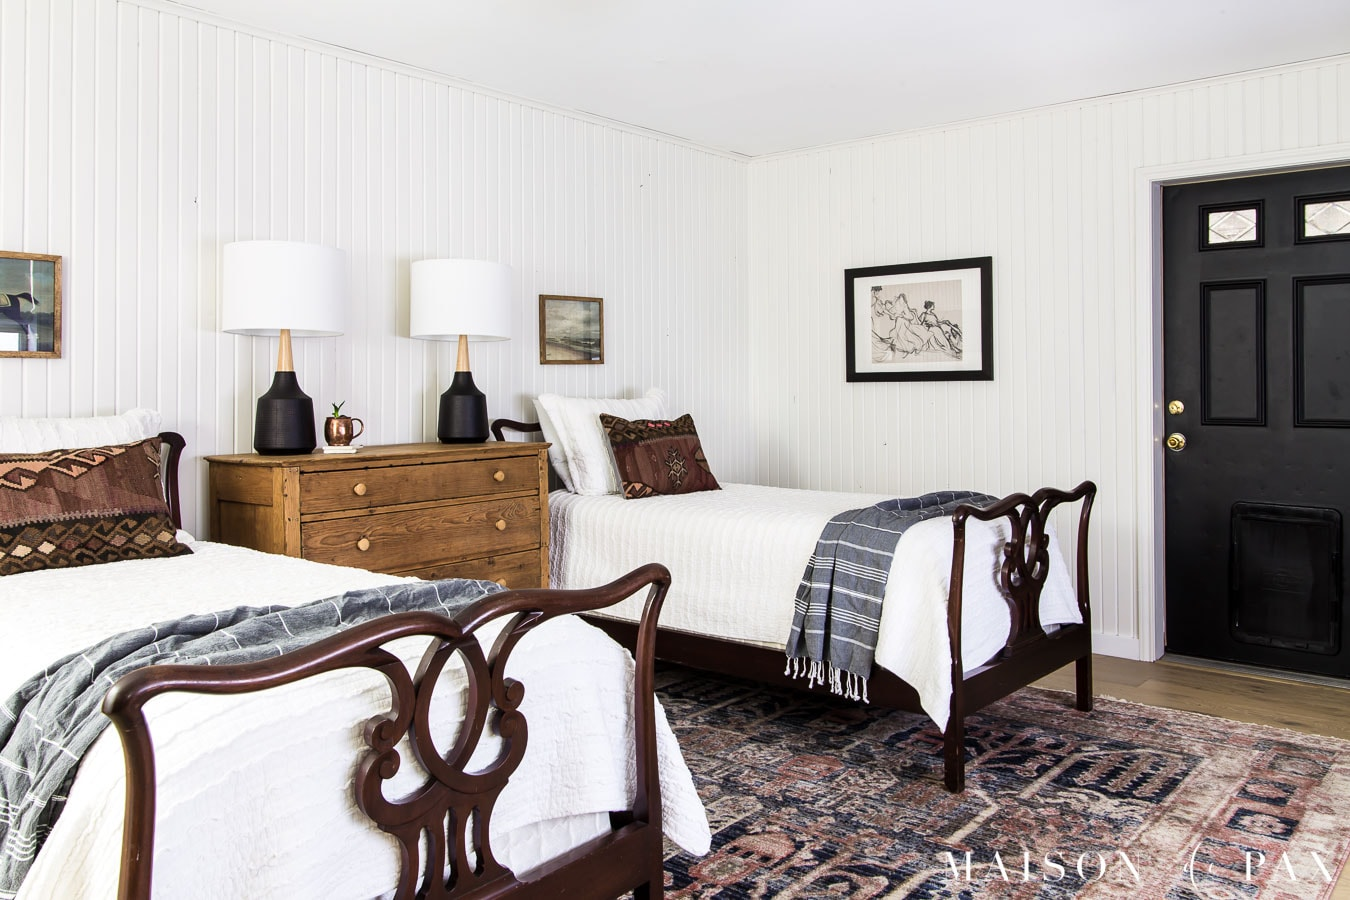 twin bedroom with white planked walls, vintage furniture, and colorful accents | Maison de Pax